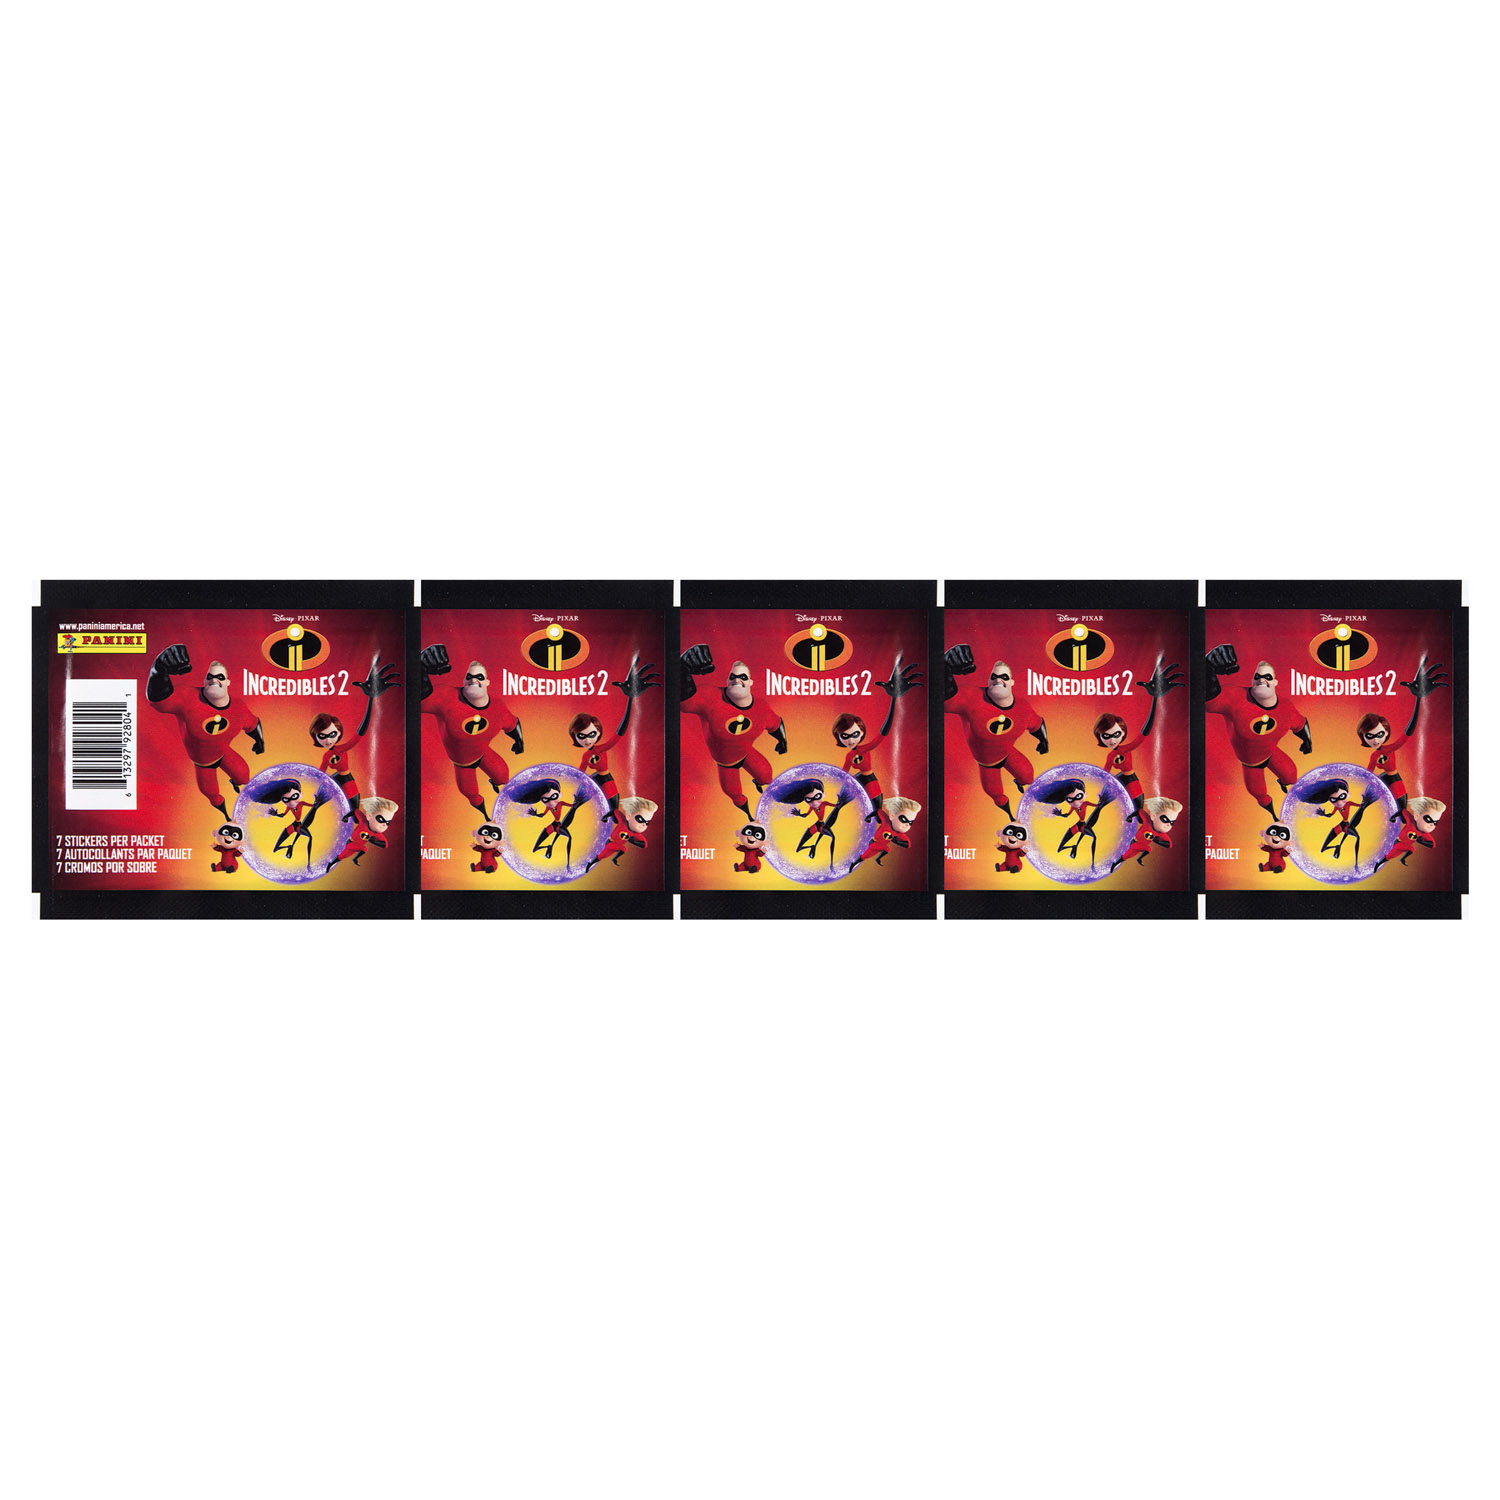 2018 Incredibles 2 Movie Sticker Collection 20 Pack